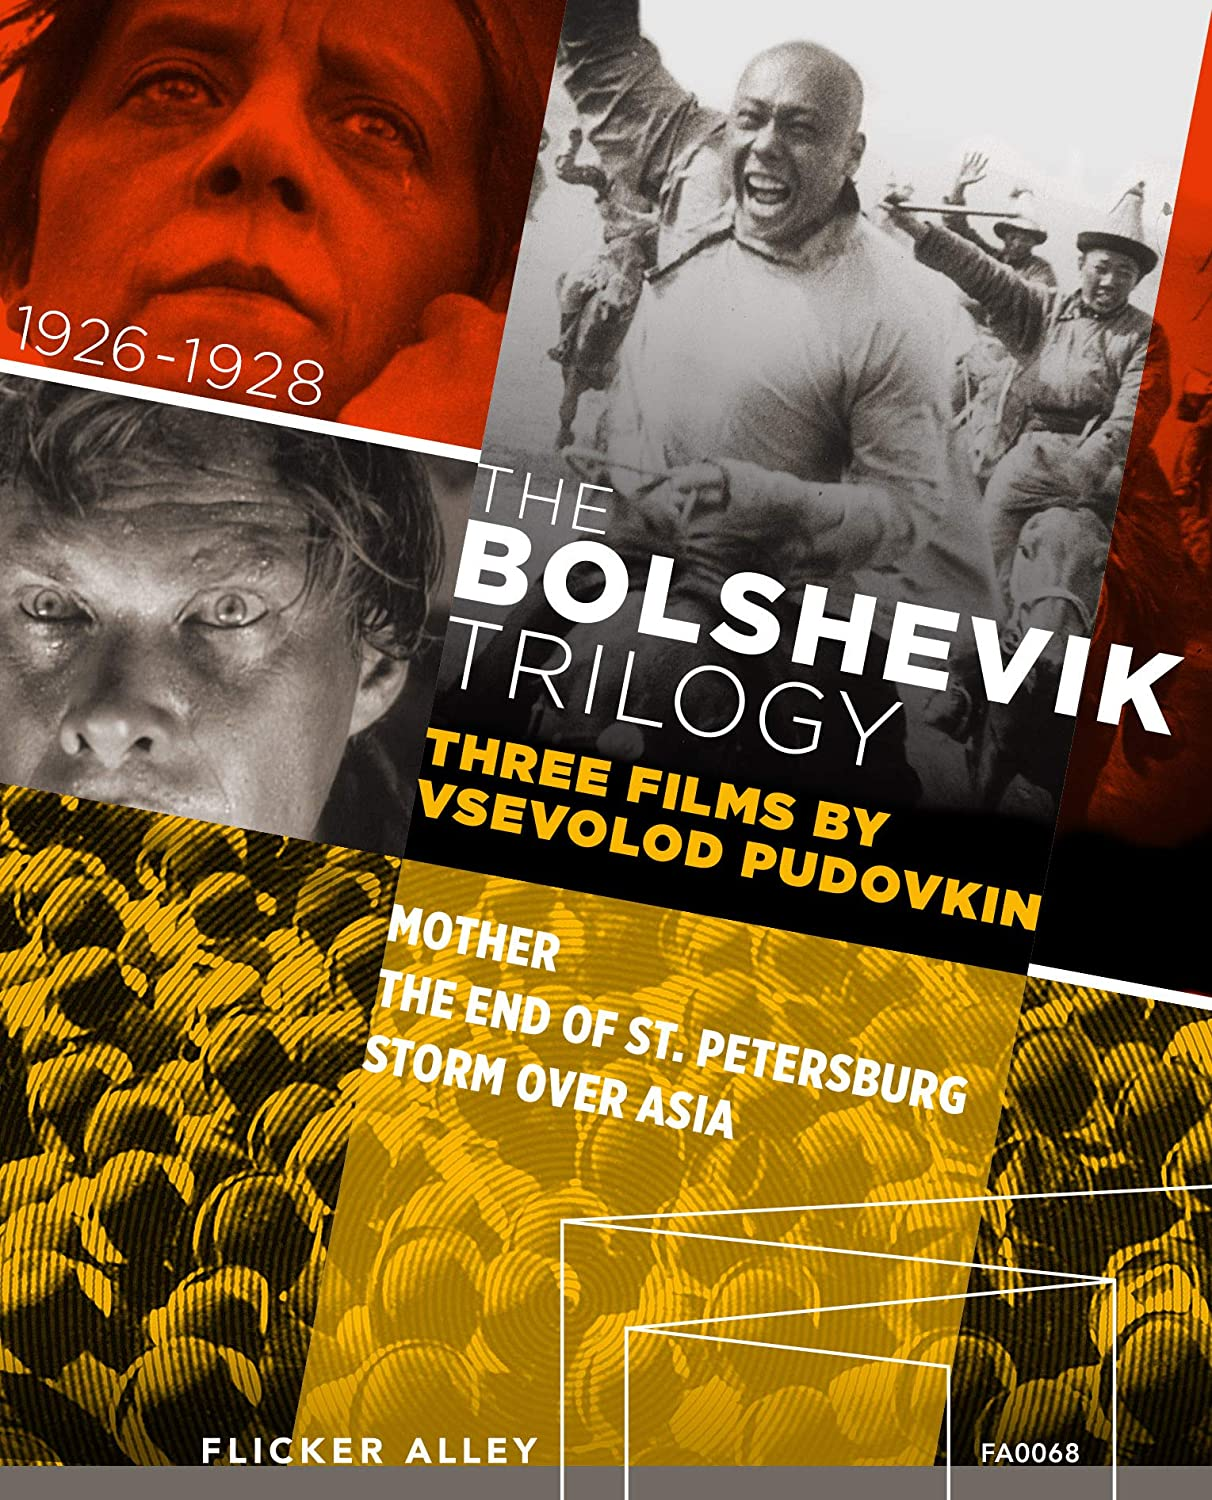 The Bolshevik Trilogy: Three Films by Vsevolod Pudovkin